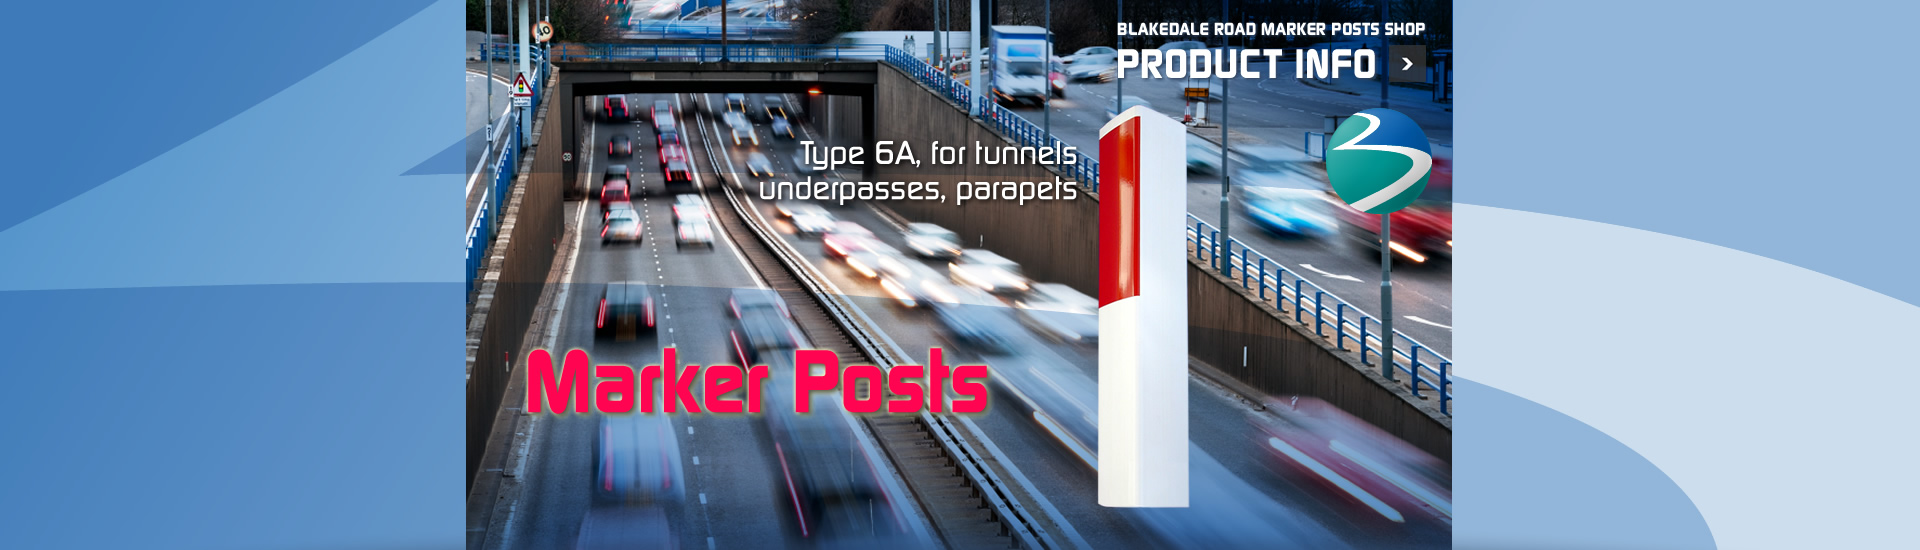 S-3-Marker-Post-Type-6A-tunnels-underpasses-parapets